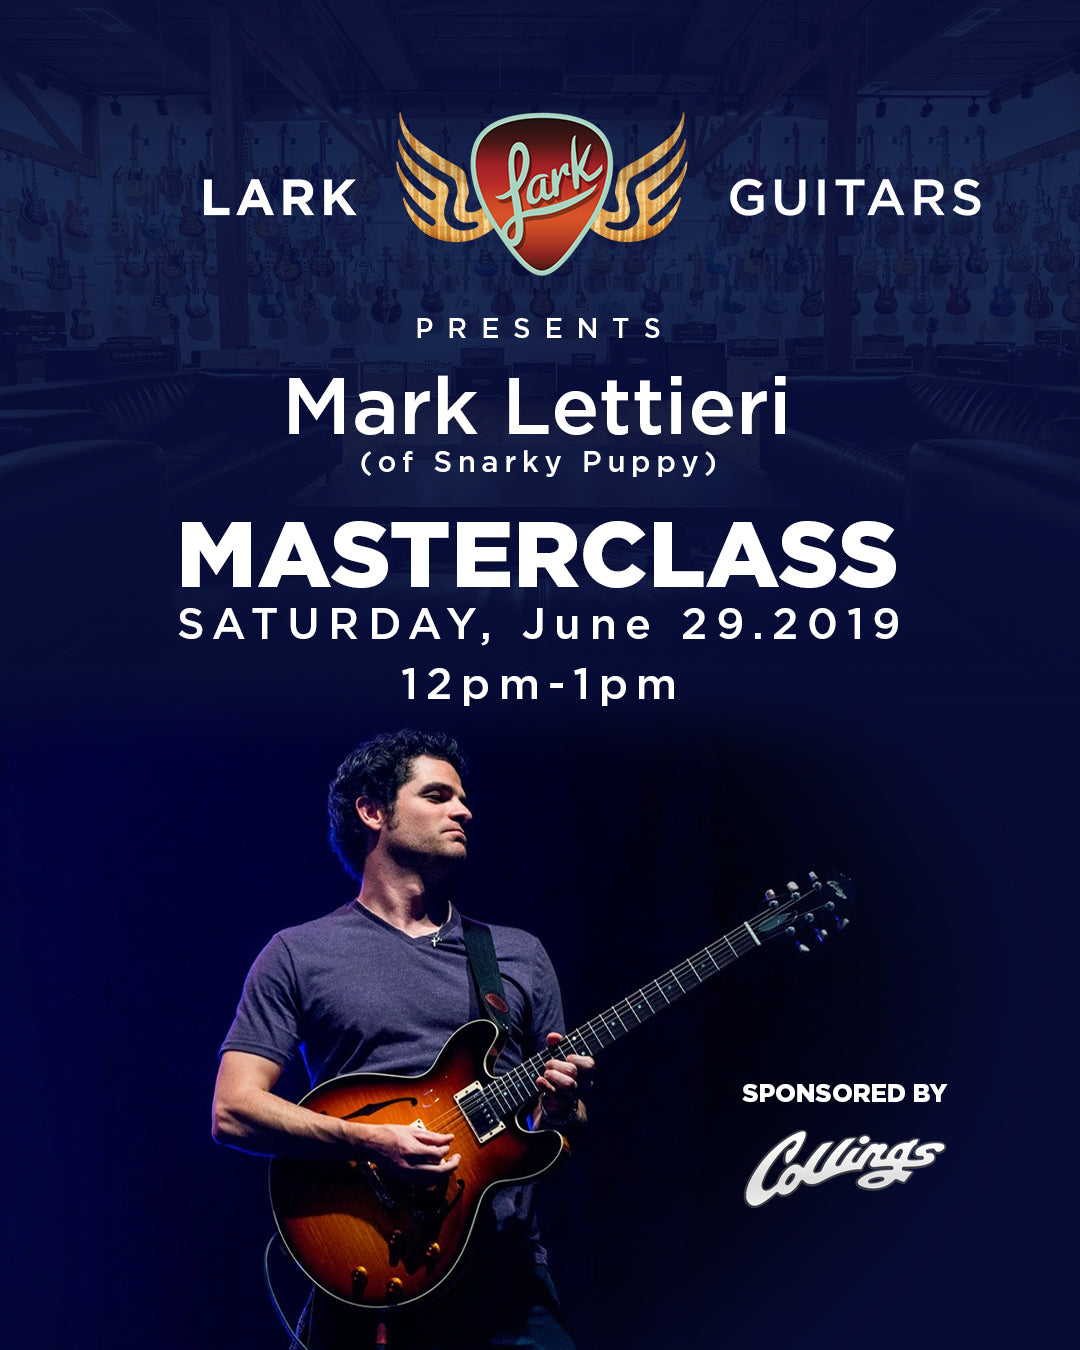 Lark Guitars Event Mark Lettieri